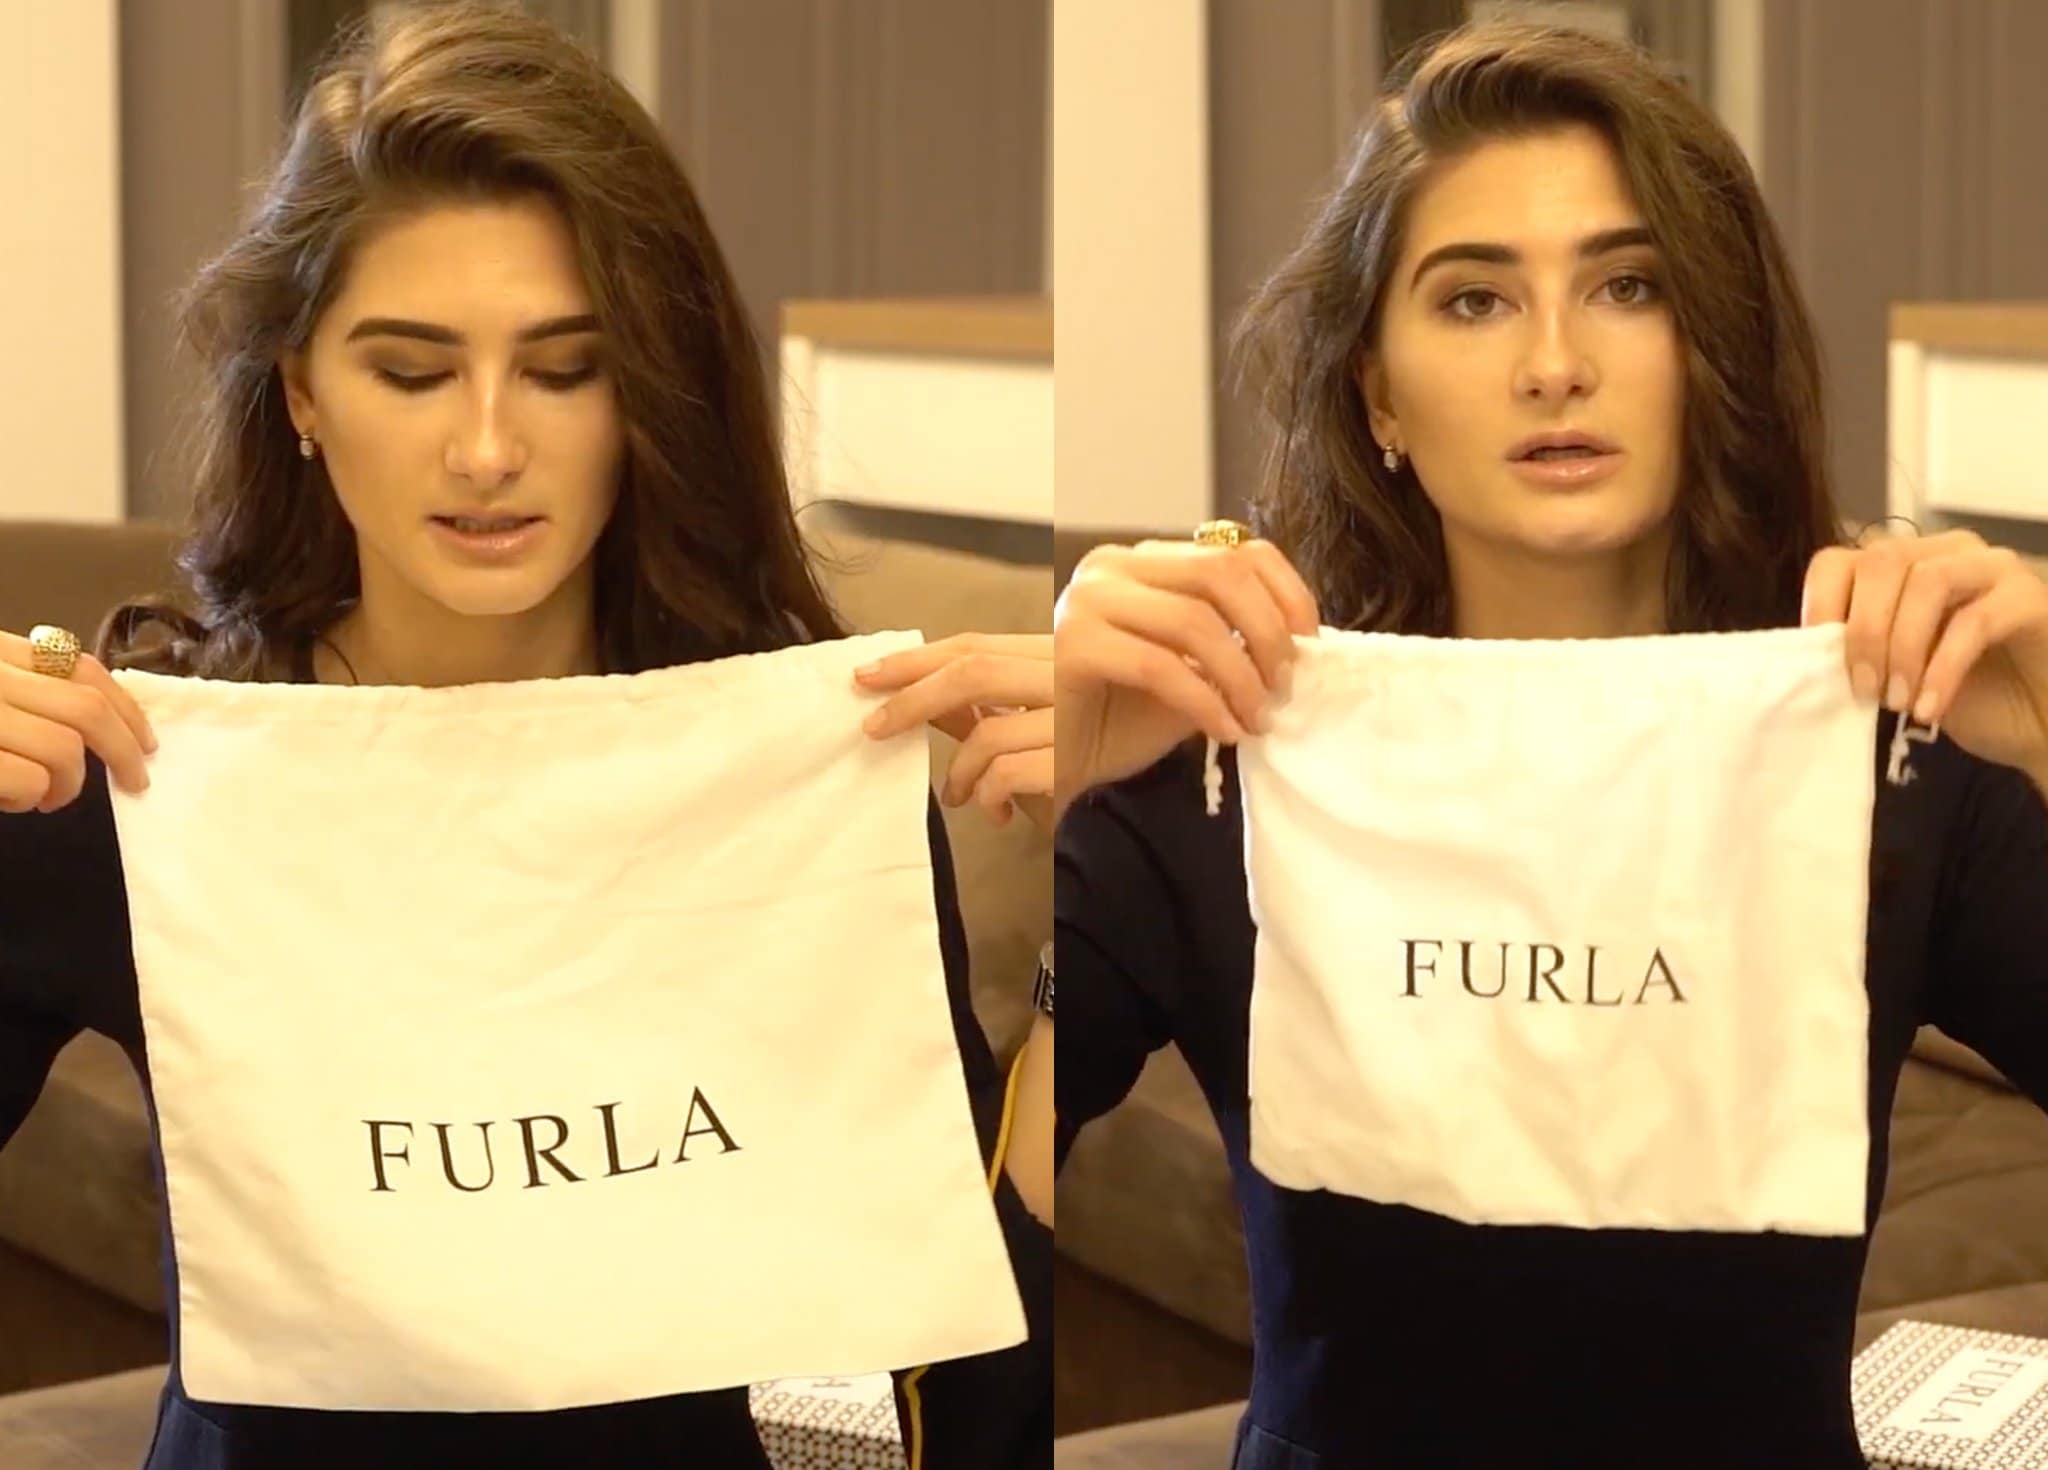 A real Furla dust bag (left) is soft and has the correct size, while a fake Furla dust bag (right) doesn't feel premium and doesn't fit well with the bag